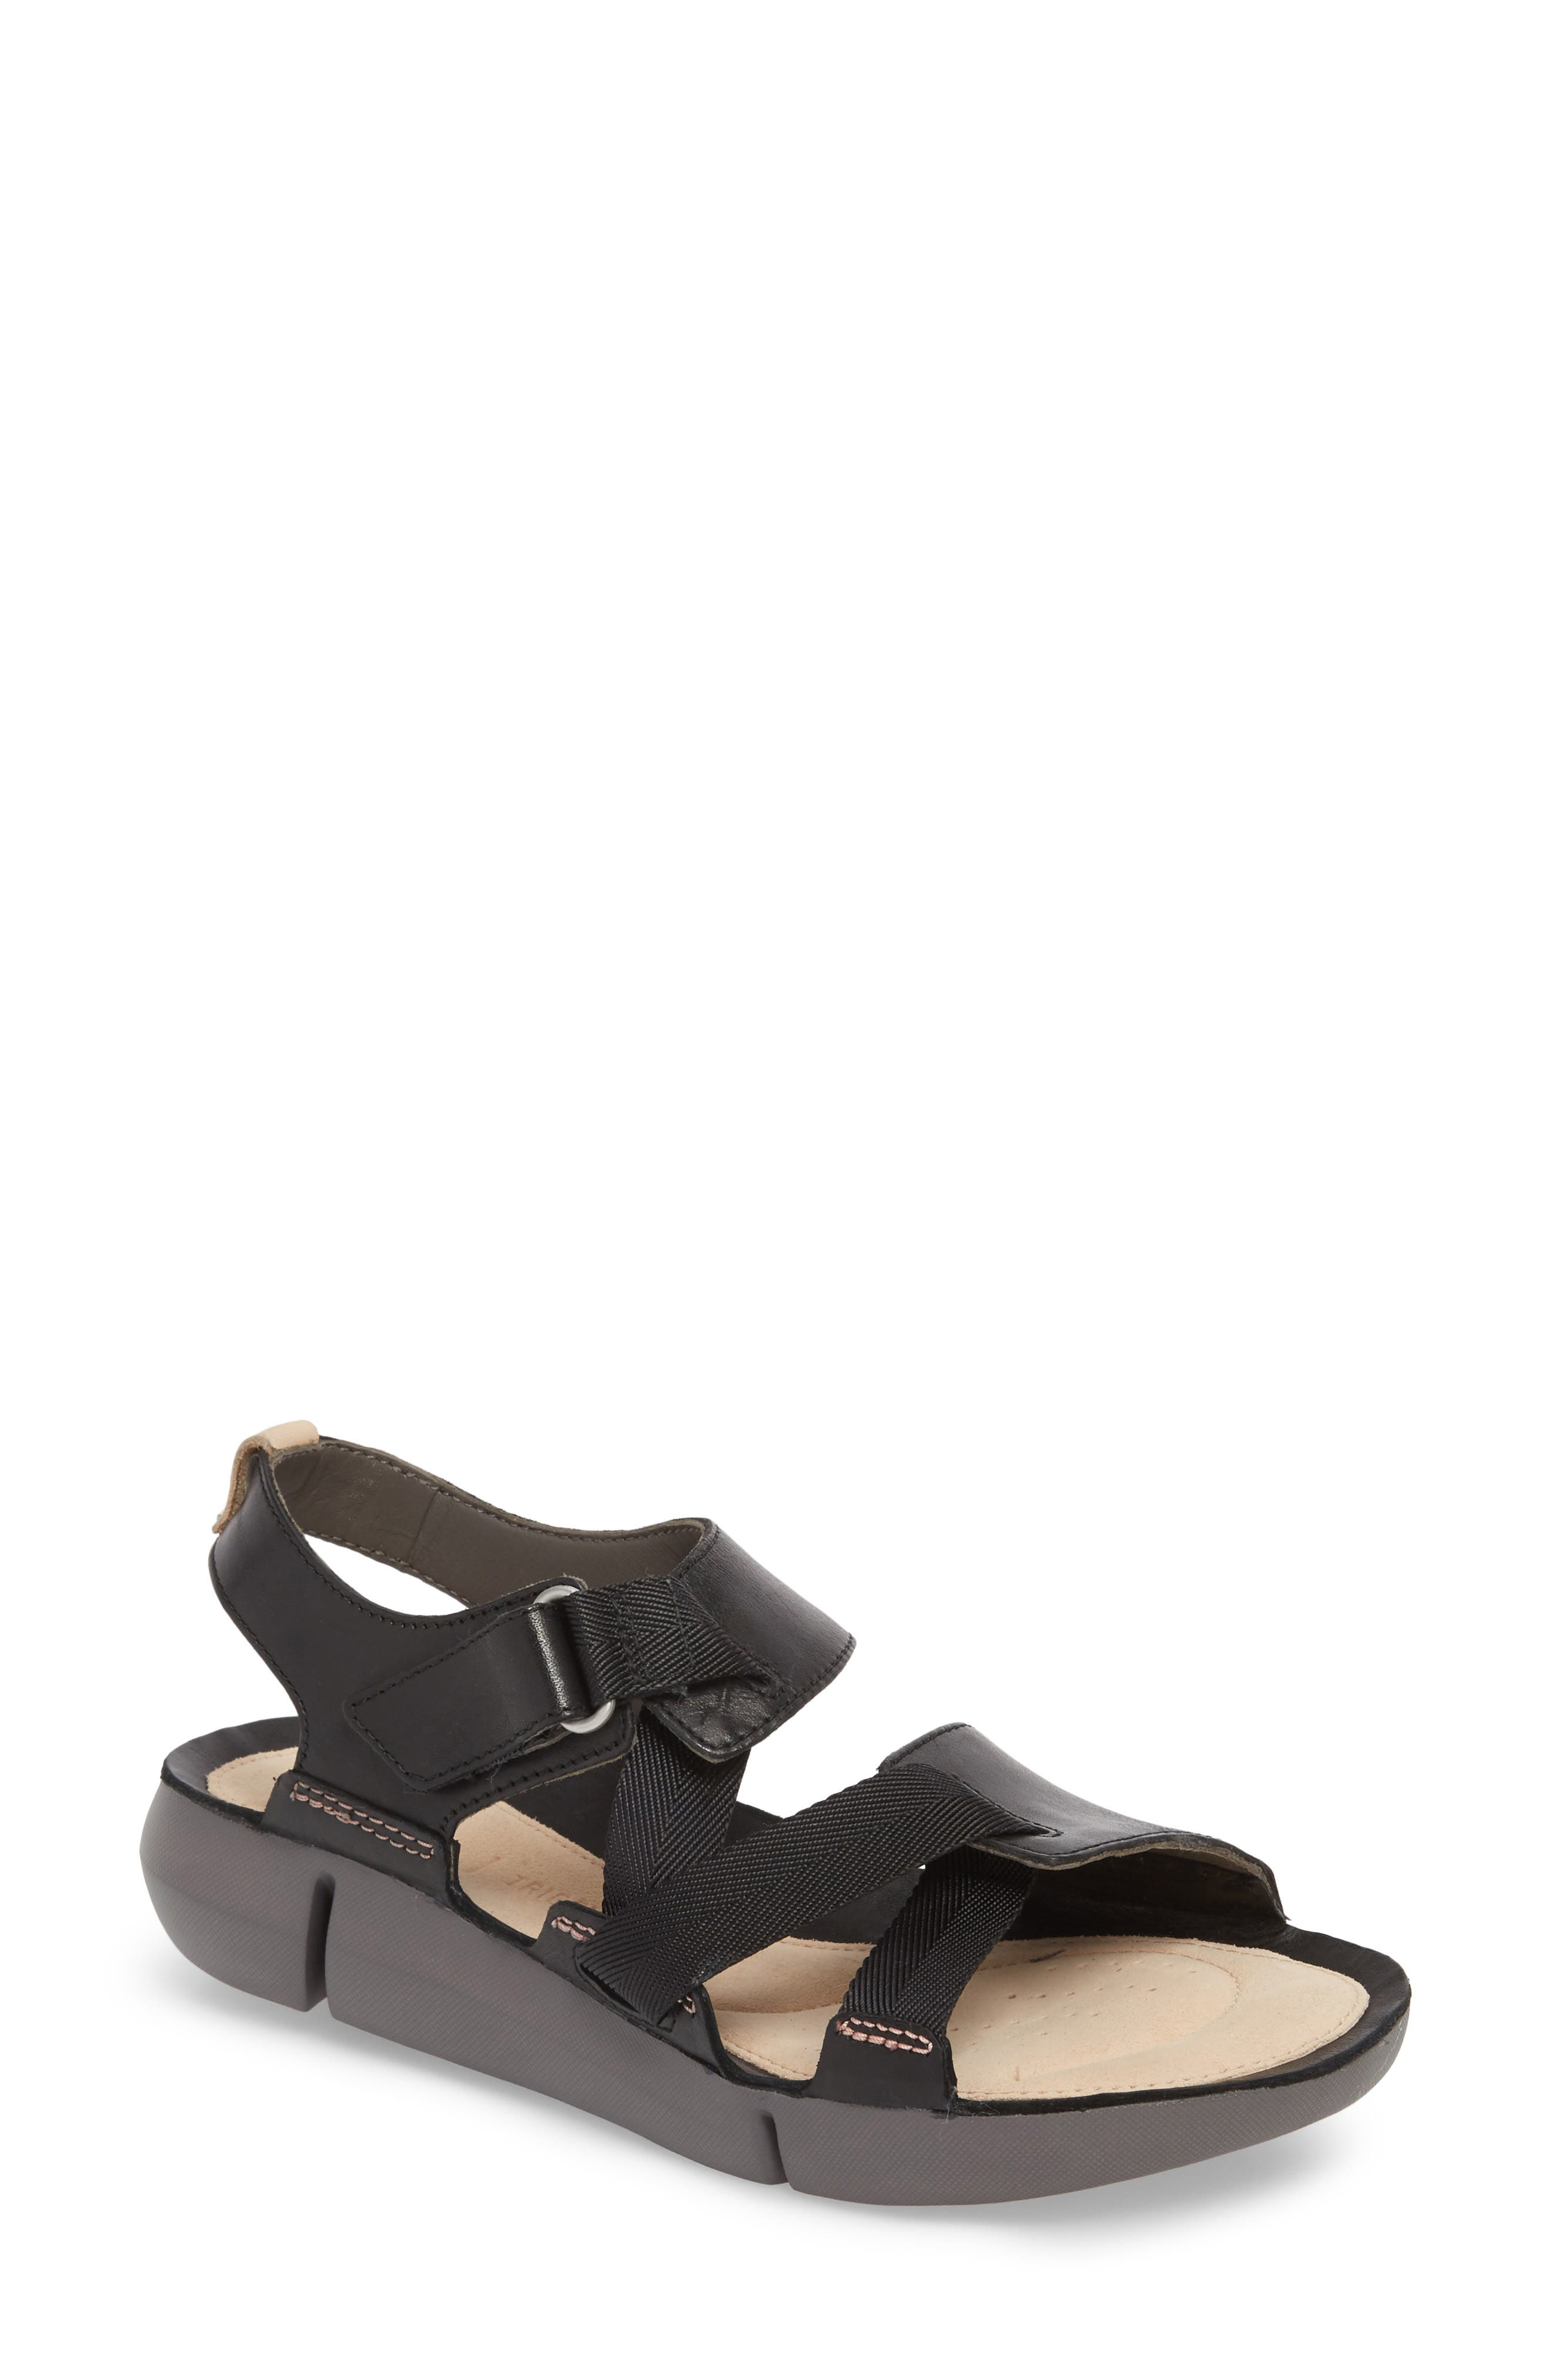 Alternate Image 1 Selected - Clarks® Tri Clover Sandal (Women)